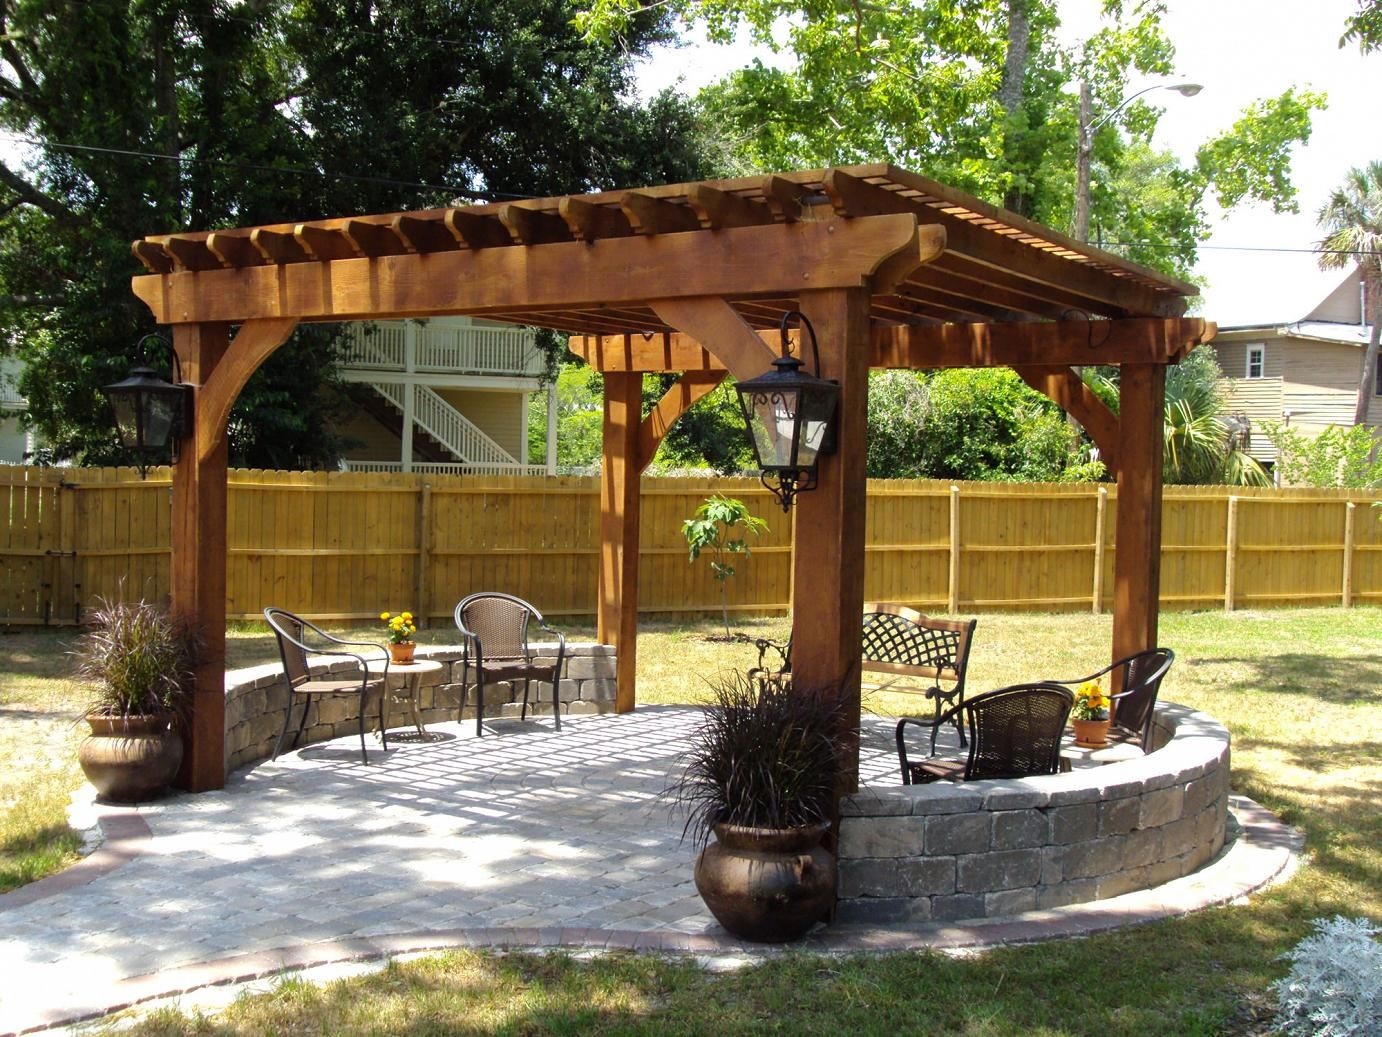 Outdoor Pergolas-Sugar Land TX Landscape Designs & Outdoor Living Areas-We offer Landscape Design, Outdoor Patios & Pergolas, Outdoor Living Spaces, Stonescapes, Residential & Commercial Landscaping, Irrigation Installation & Repairs, Drainage Systems, Landscape Lighting, Outdoor Living Spaces, Tree Service, Lawn Service, and more.